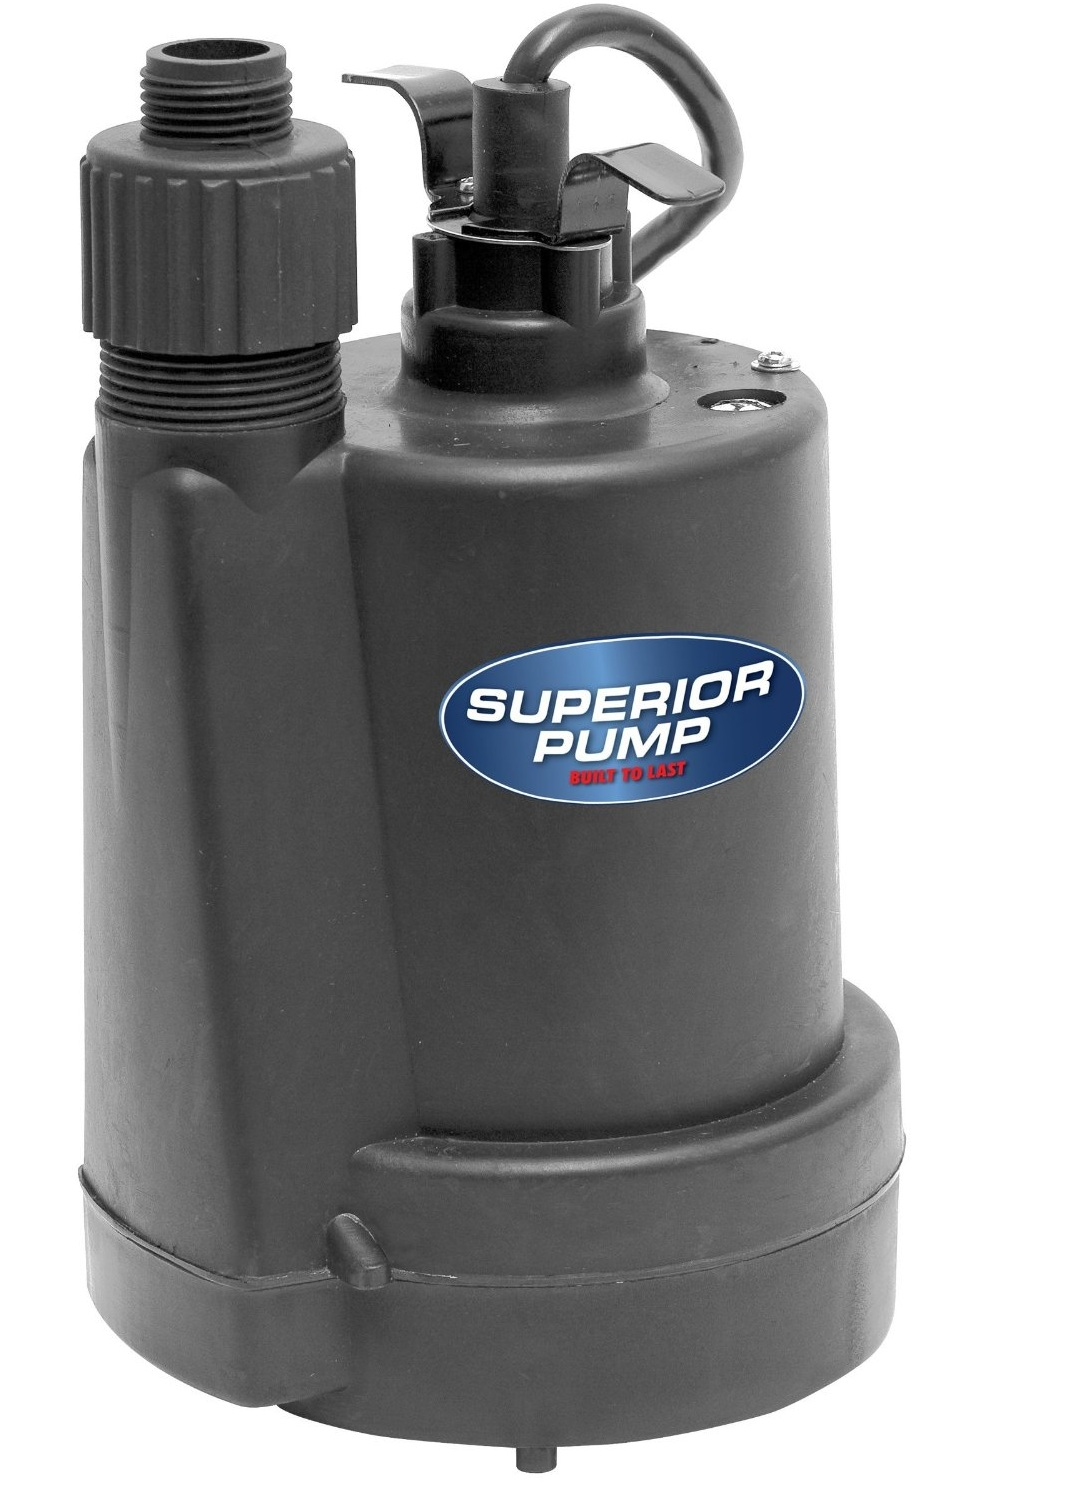 Top Pedestal Sump Pump Reviews 2016